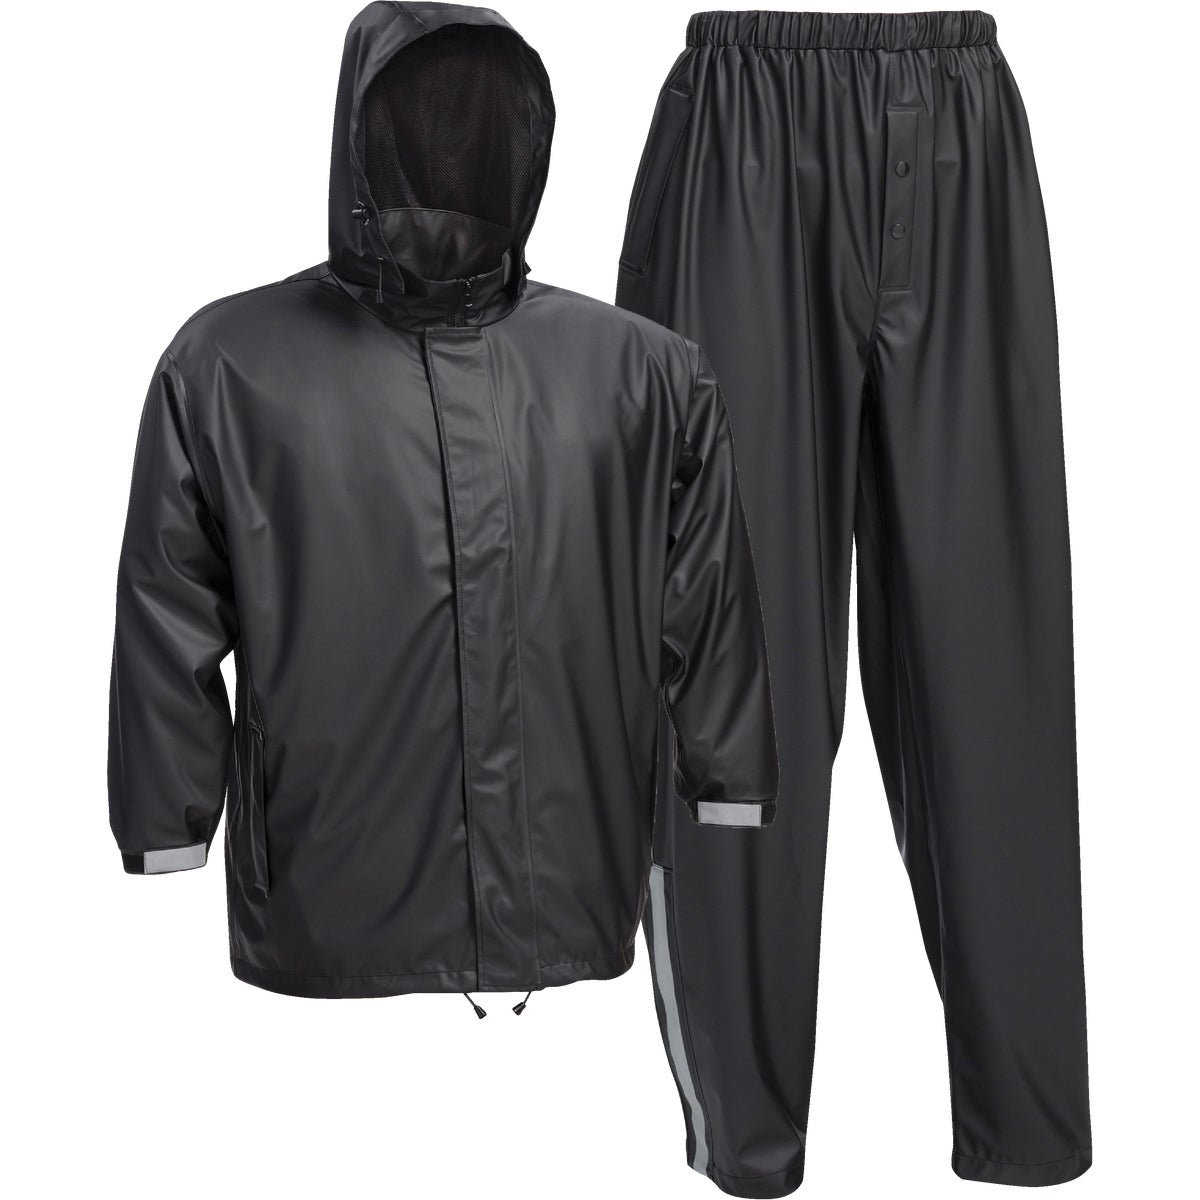 West Chester 3-Piece Black Rain Suit, 44520/L